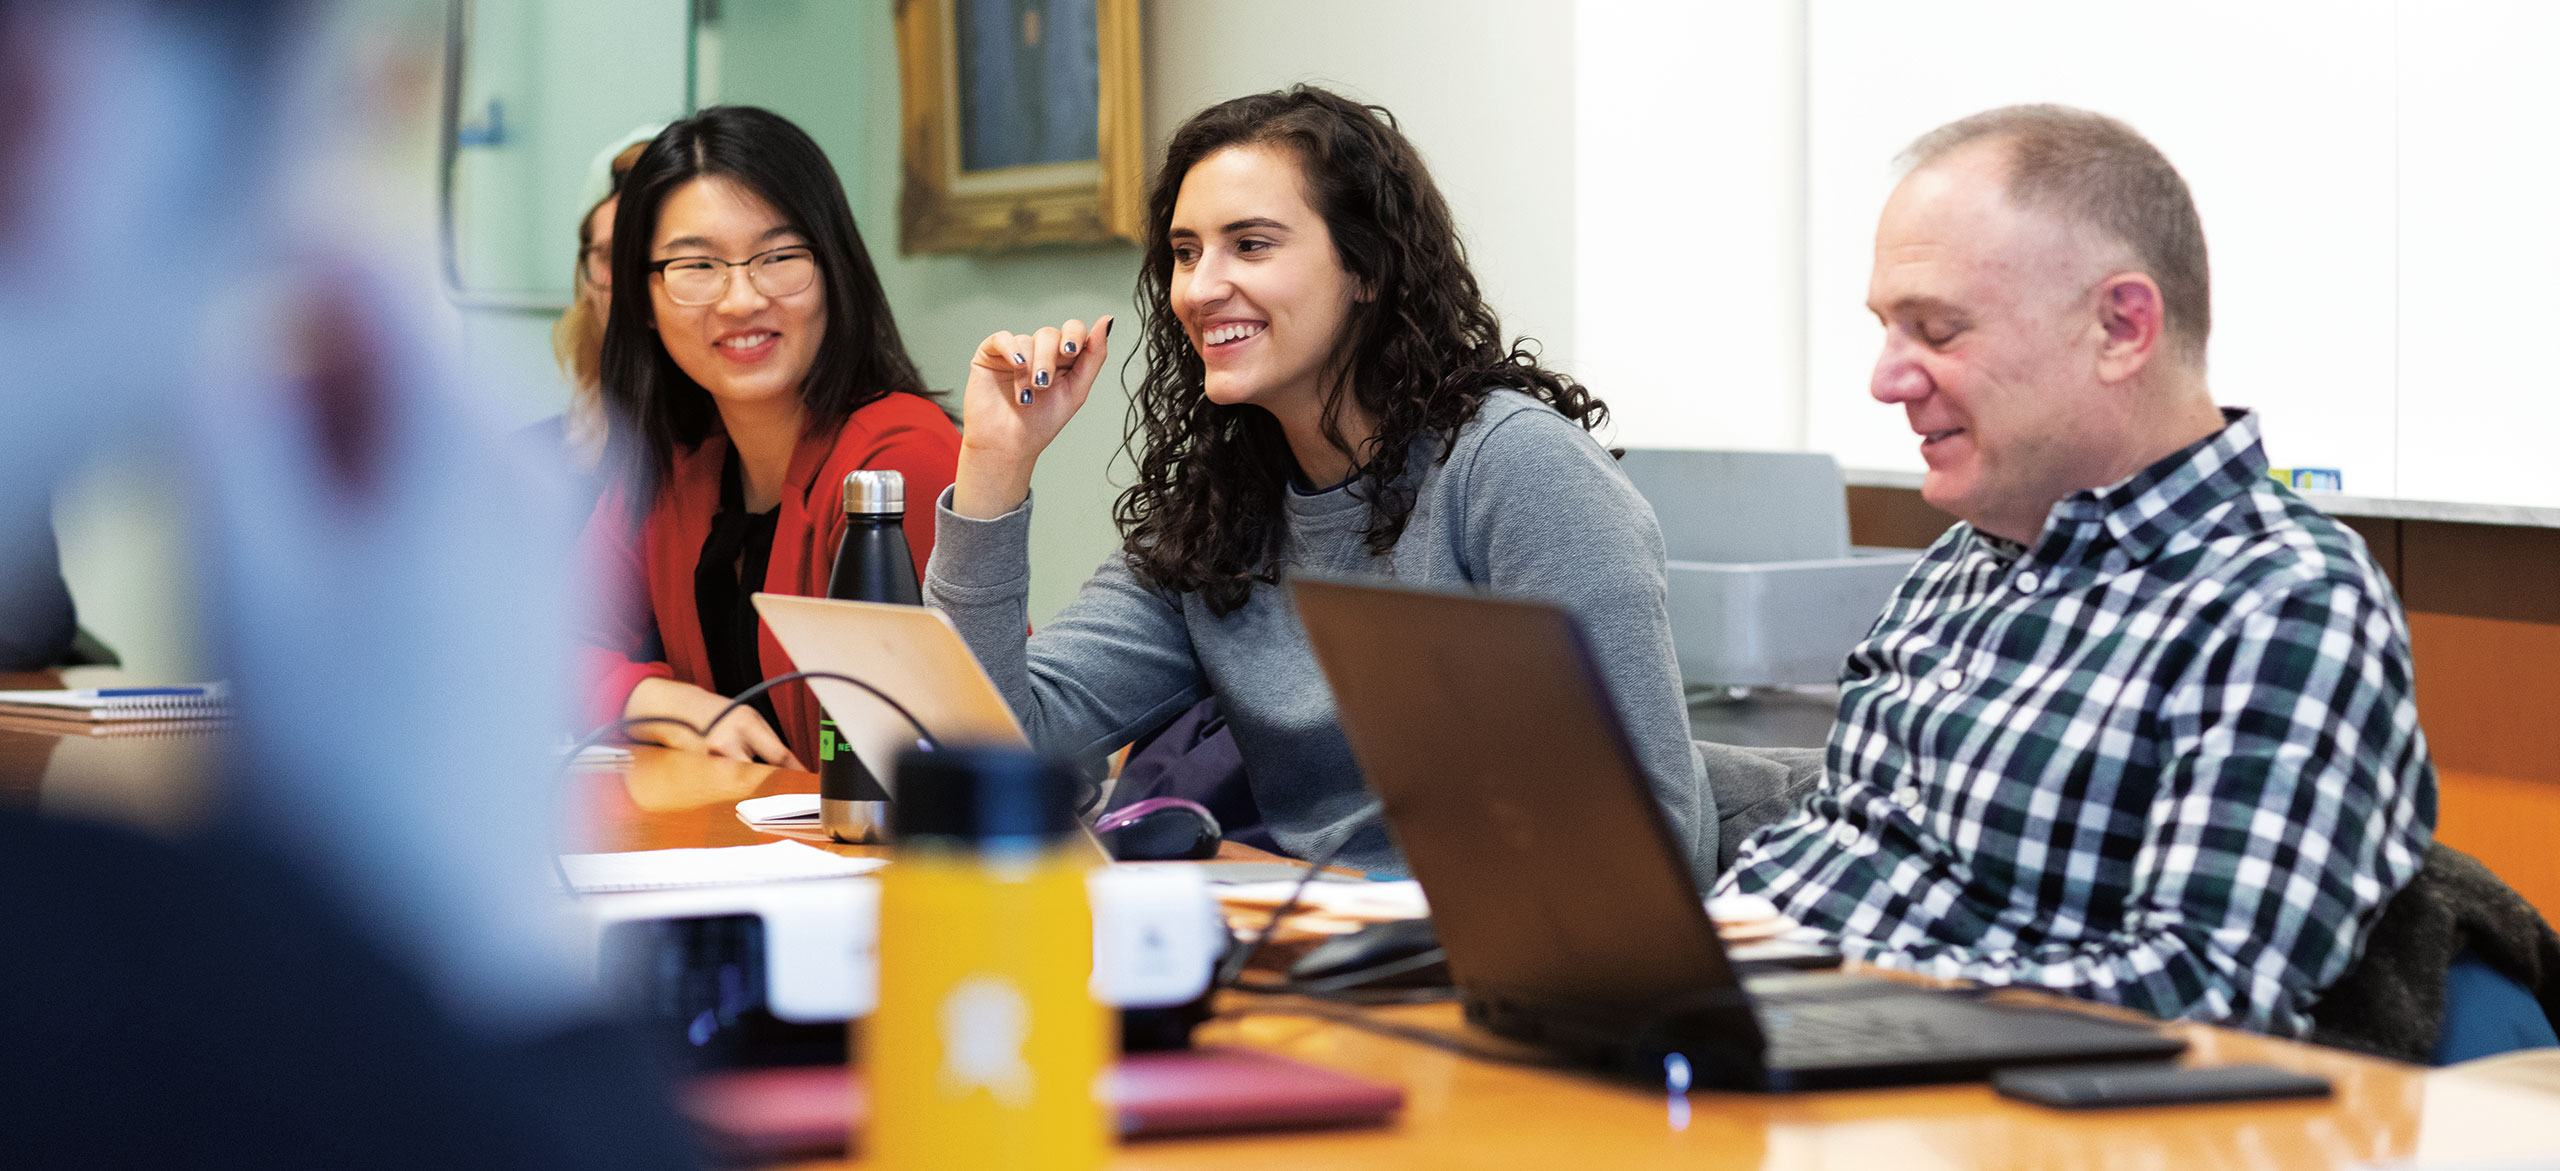 Female students and professor in class